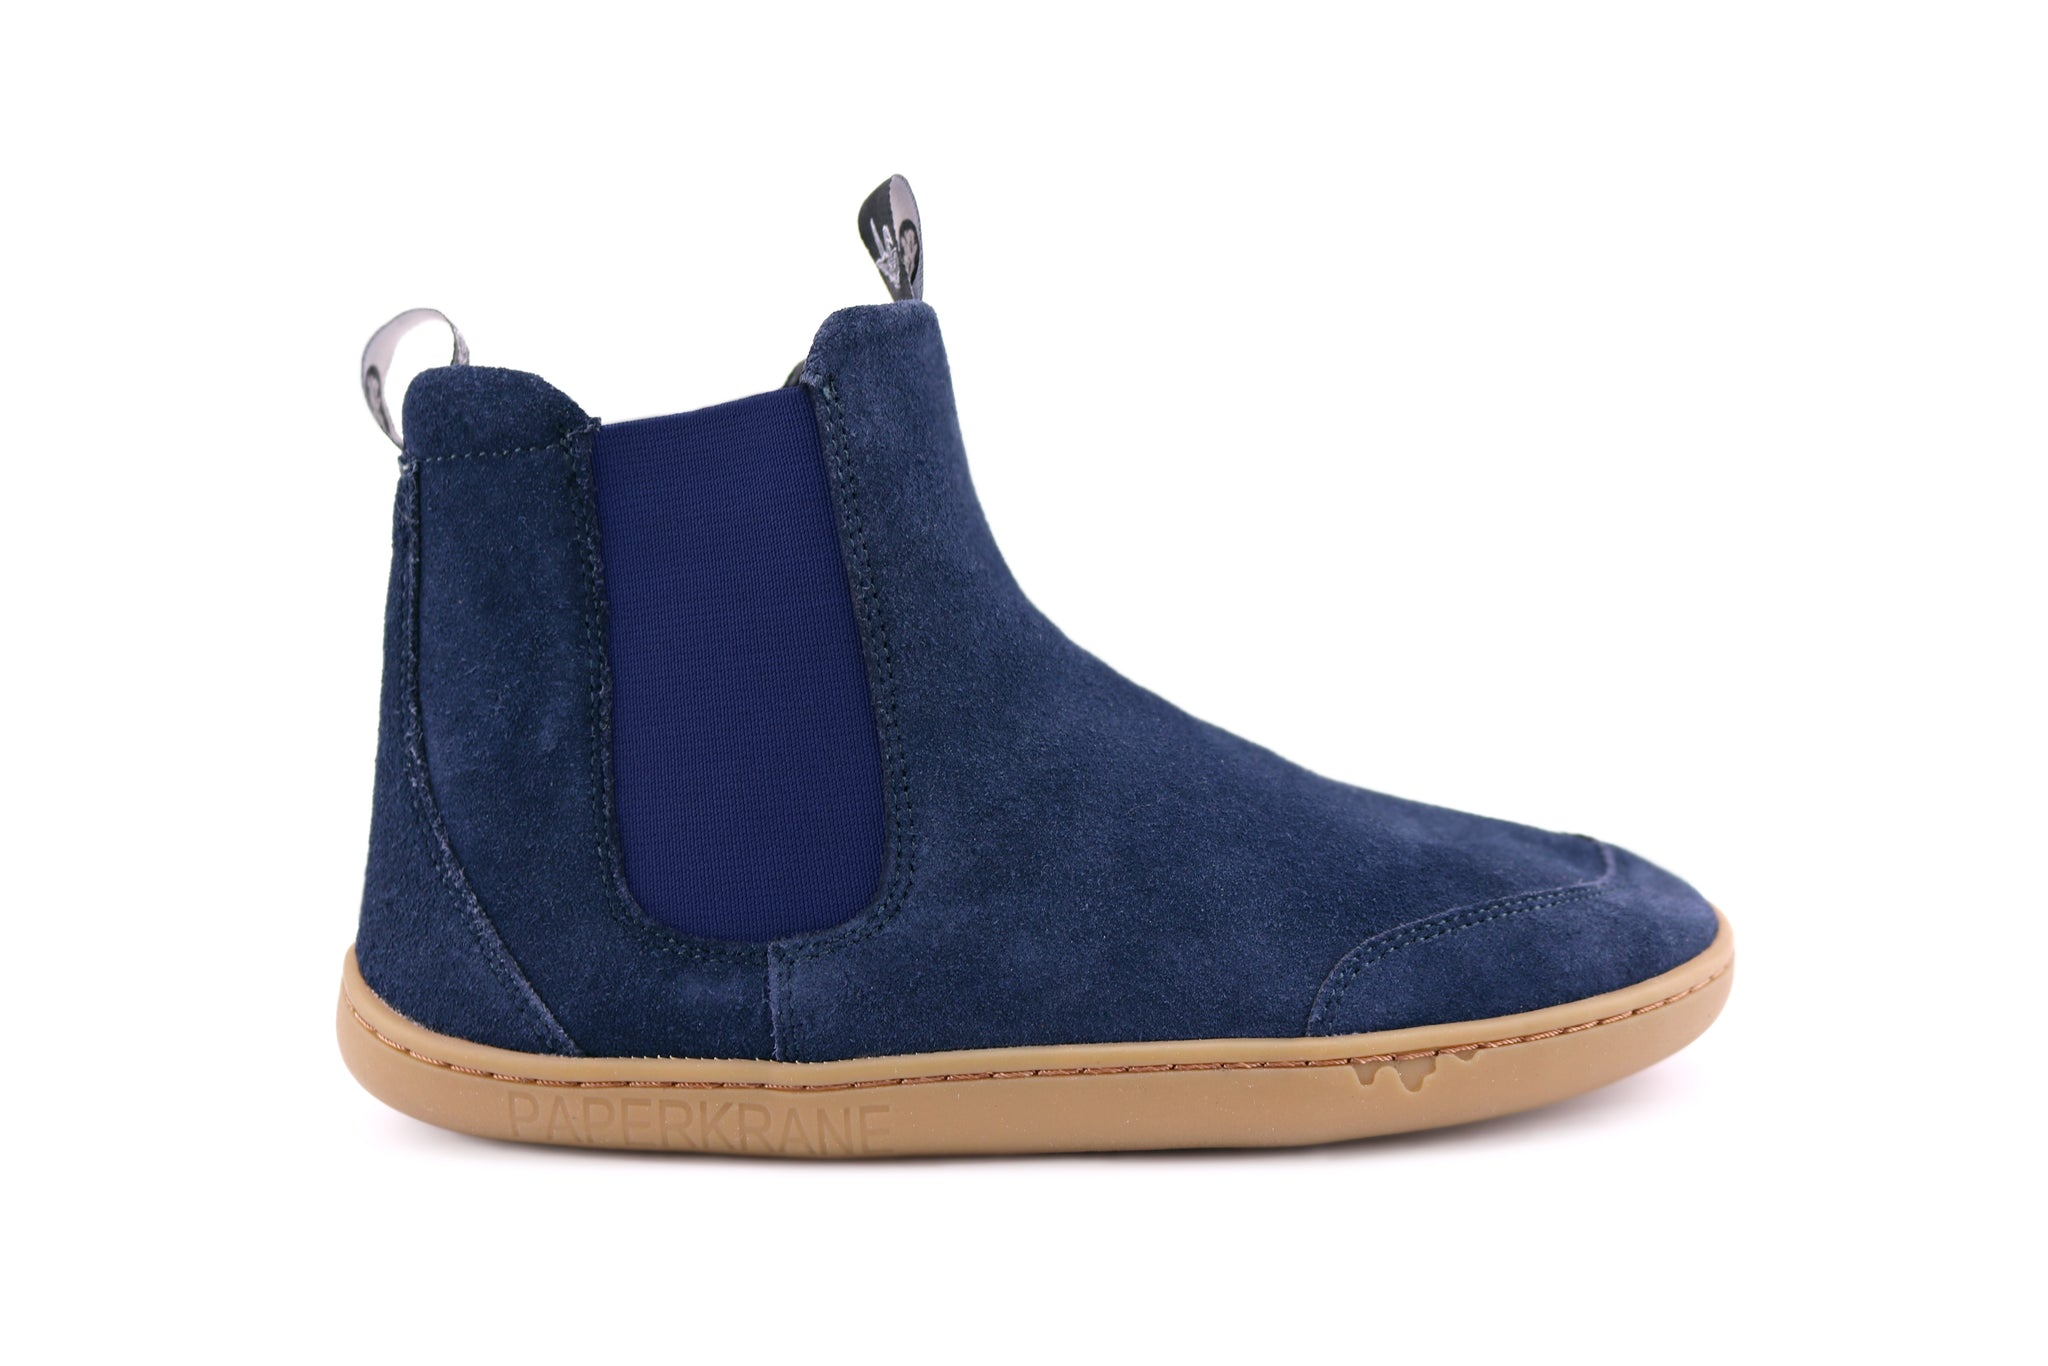 NAVY SUEDE CHELSEA PK SIDE VIEW